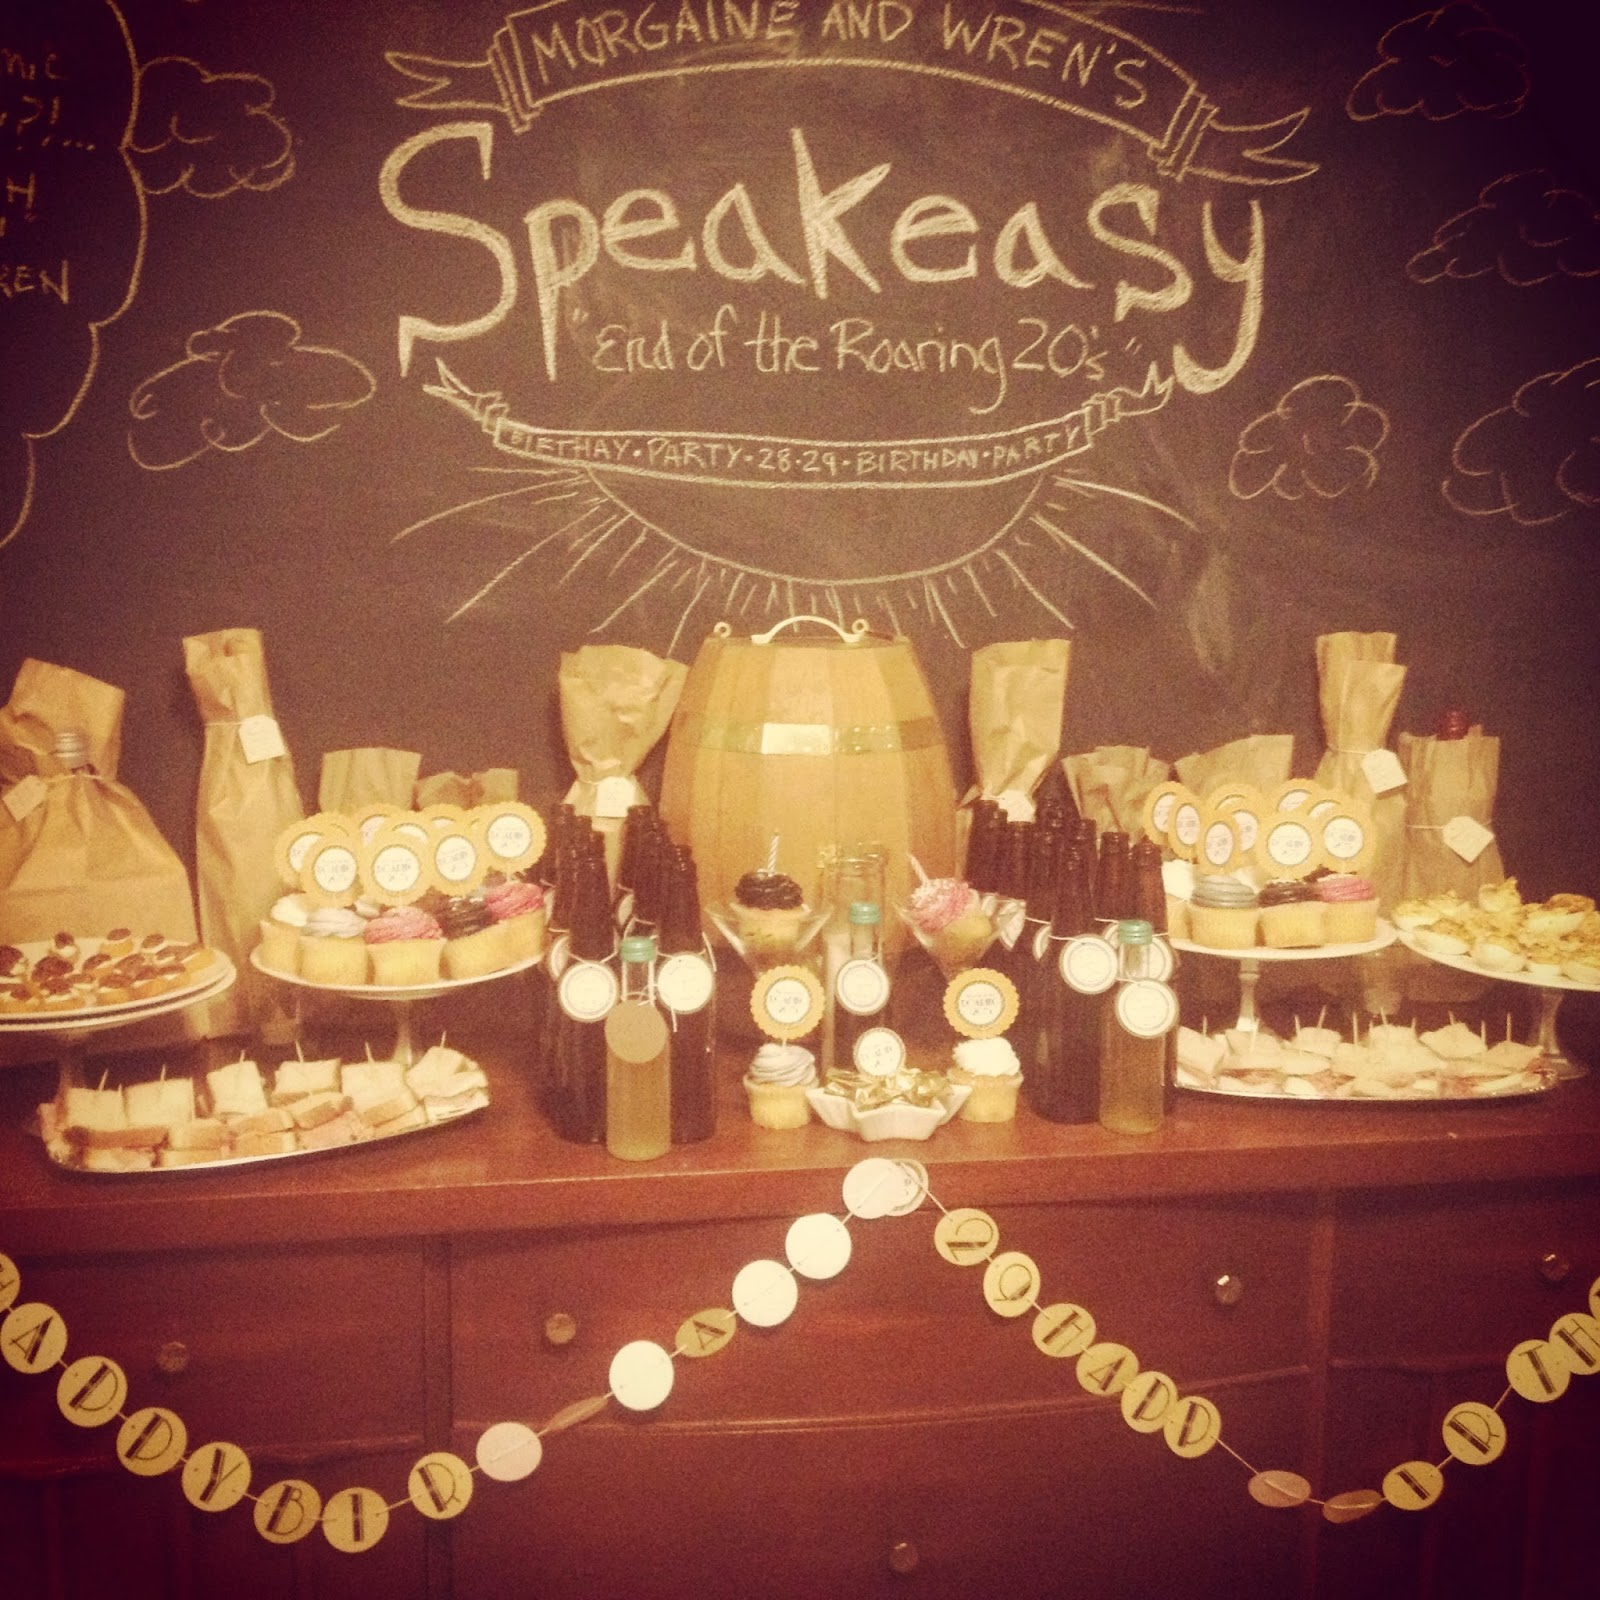 End of the Roaring 20s Speakeasy Birthday Party decor and food